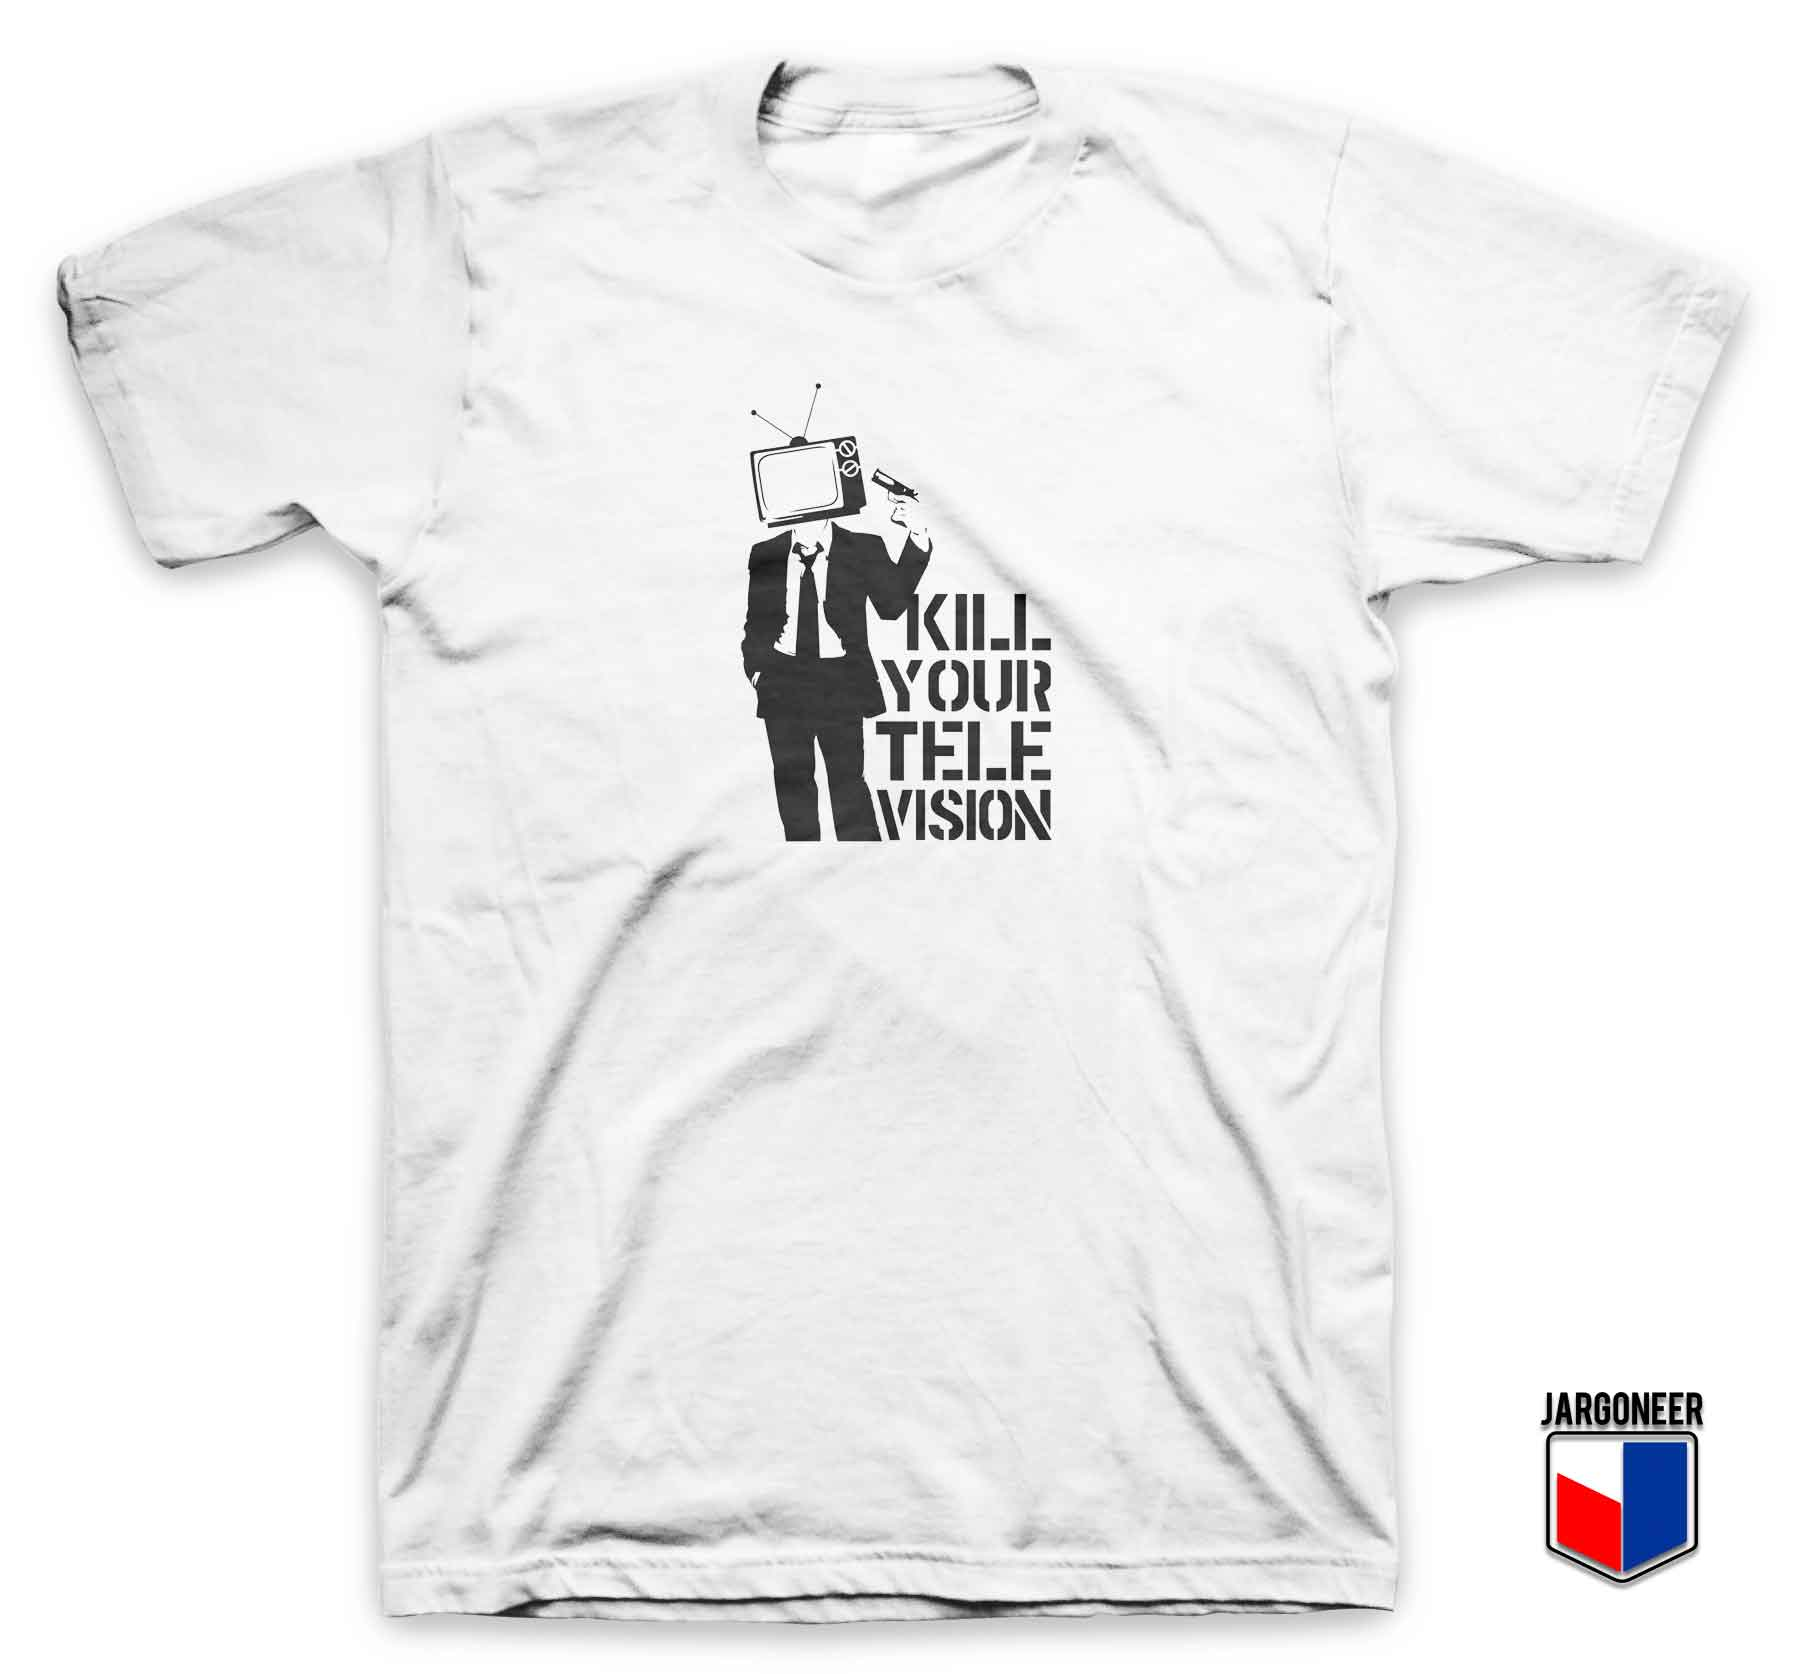 Cool Kill Your Tv T Shirt Design Ideas By Jargoneer